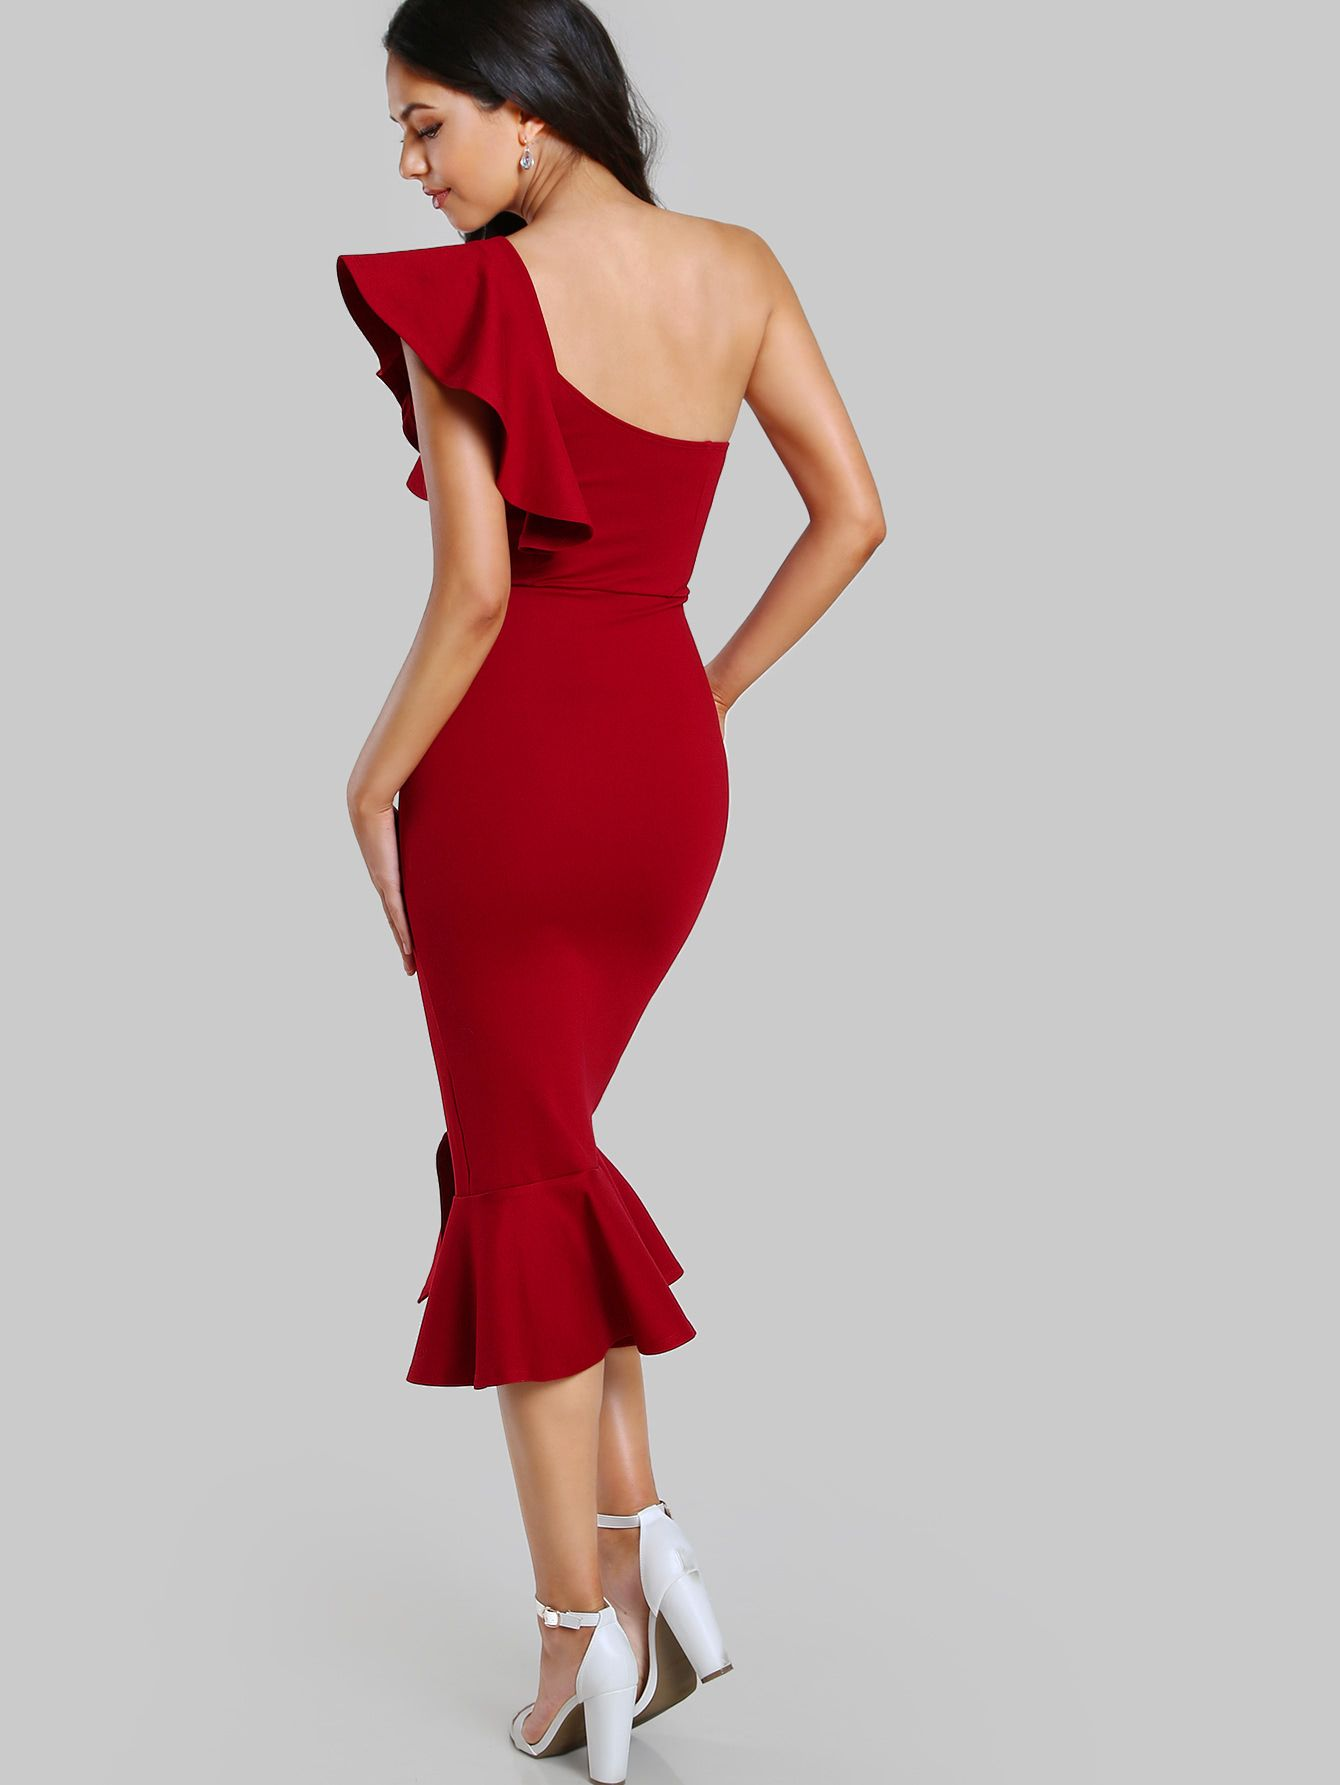 e20282080520 Shop Flounce One Shoulder Slit Fishtail Dress online. SheIn offers Flounce  One Shoulder Slit Fishtail Dress & more to fit your fashionable needs.